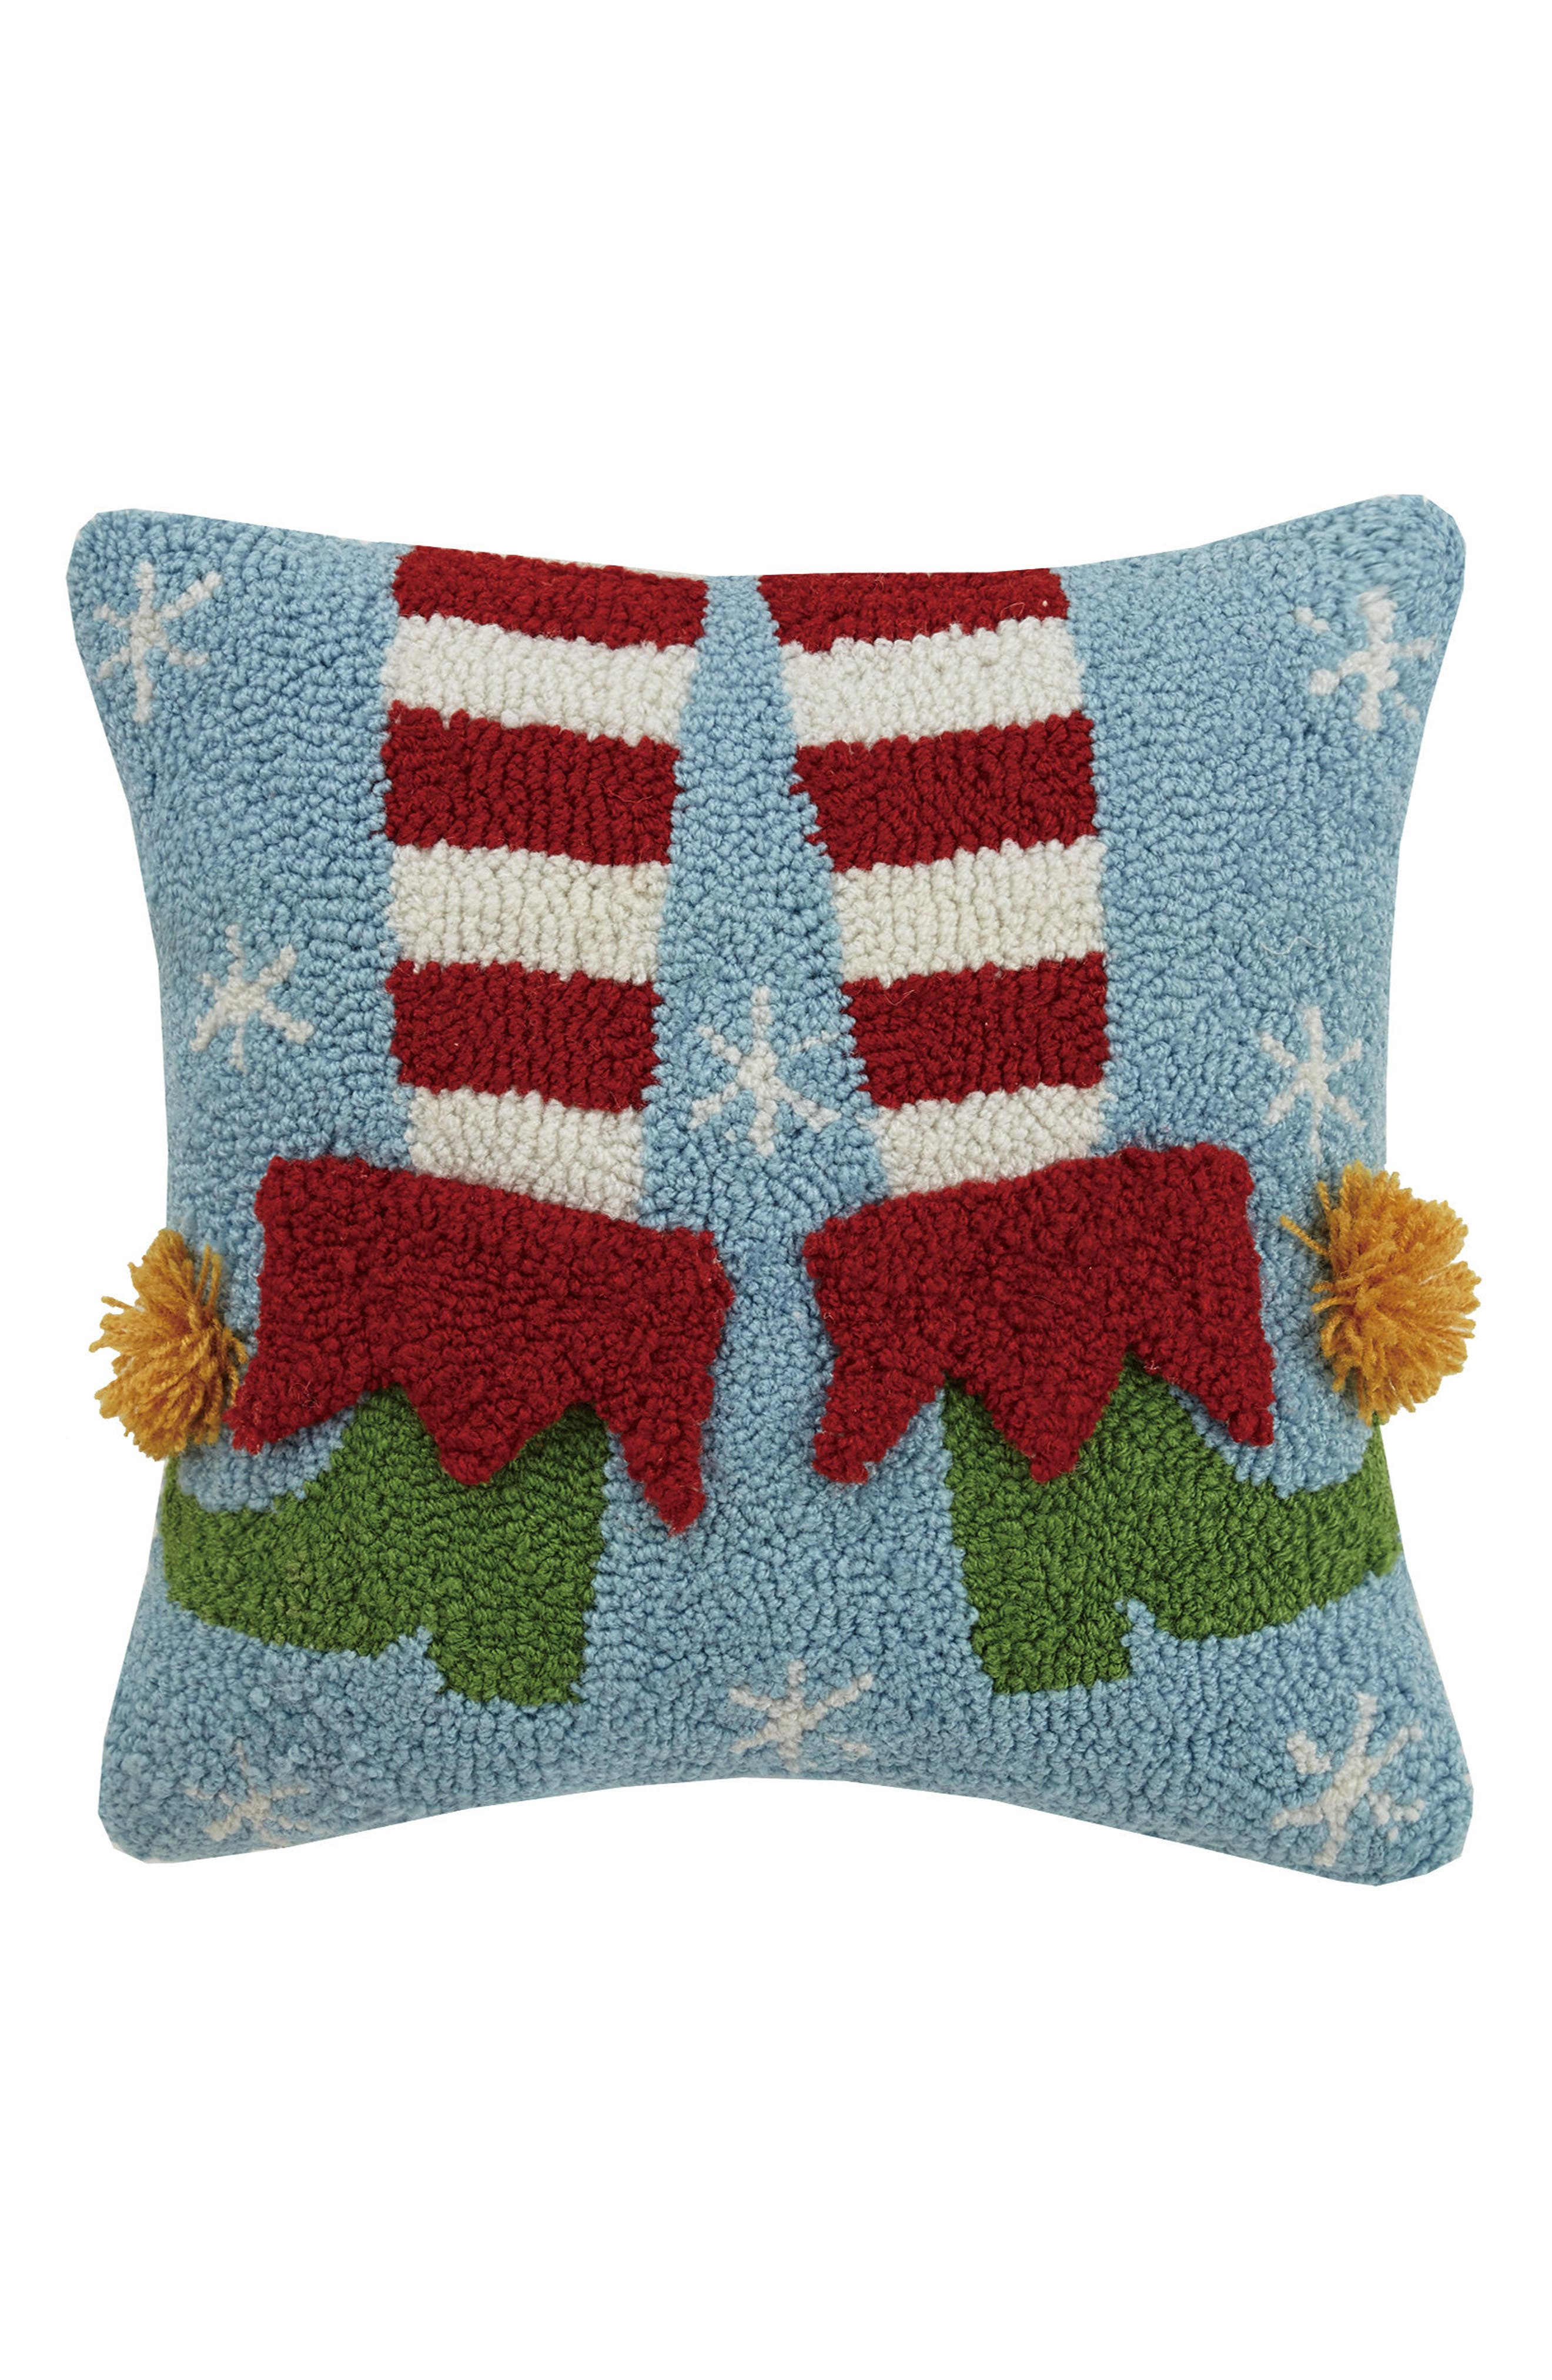 Elf Legs Hooked Accent Pillow,                         Main,                         color, 400